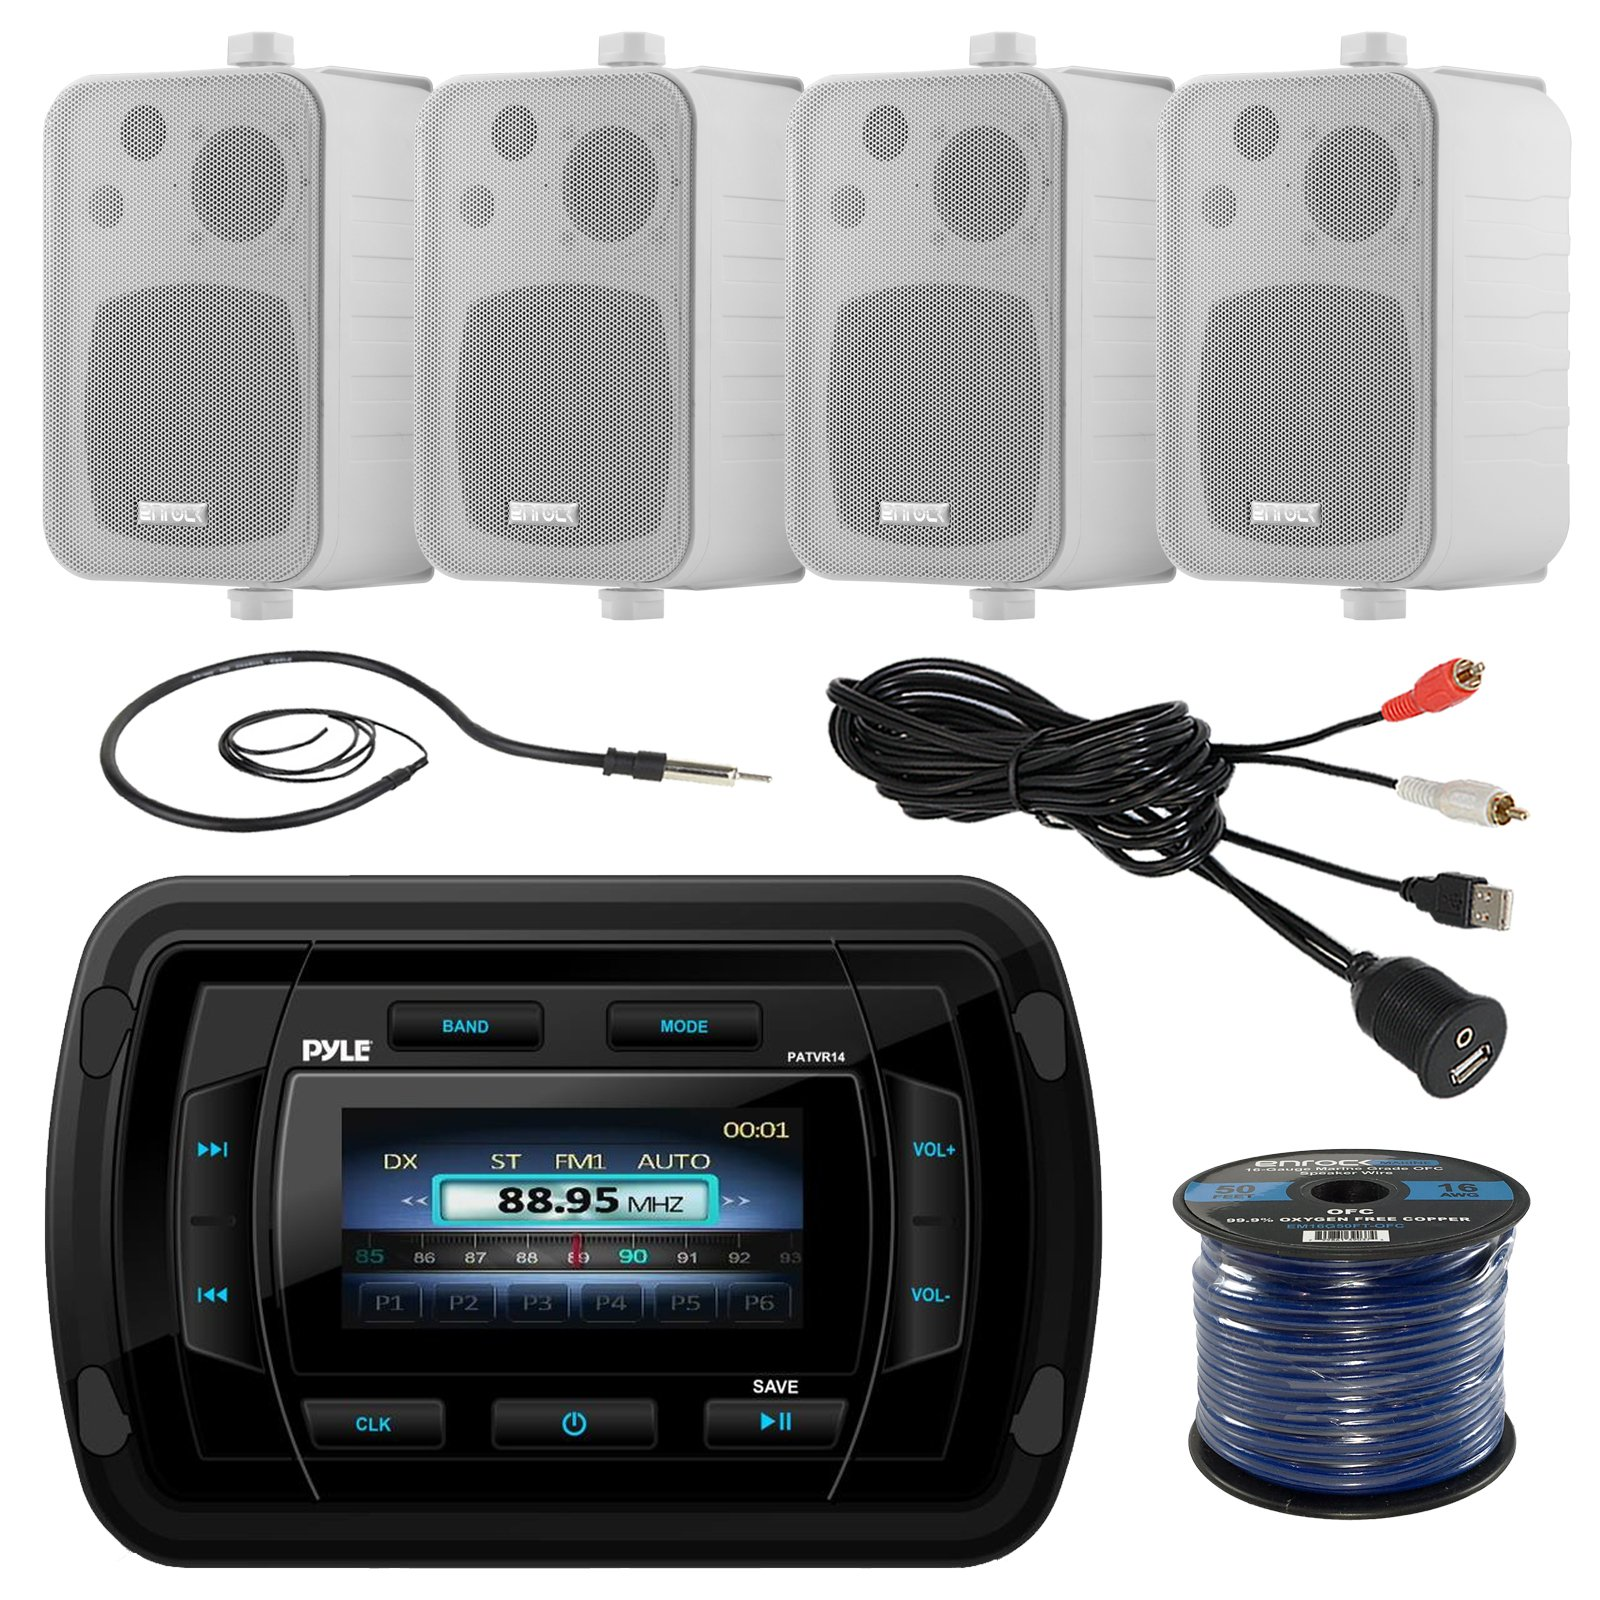 Pyle PATVR14 MP3/MP5 Bluetooth Marine Boat Yacht Stereo Receiver Bundle Combo with 4X Enrock White 4'' 200-Watt Waterproof Stereo Box Speaker + Radio Antenna + USB/AUX to RCA Cable + 16G 50-FT Wire